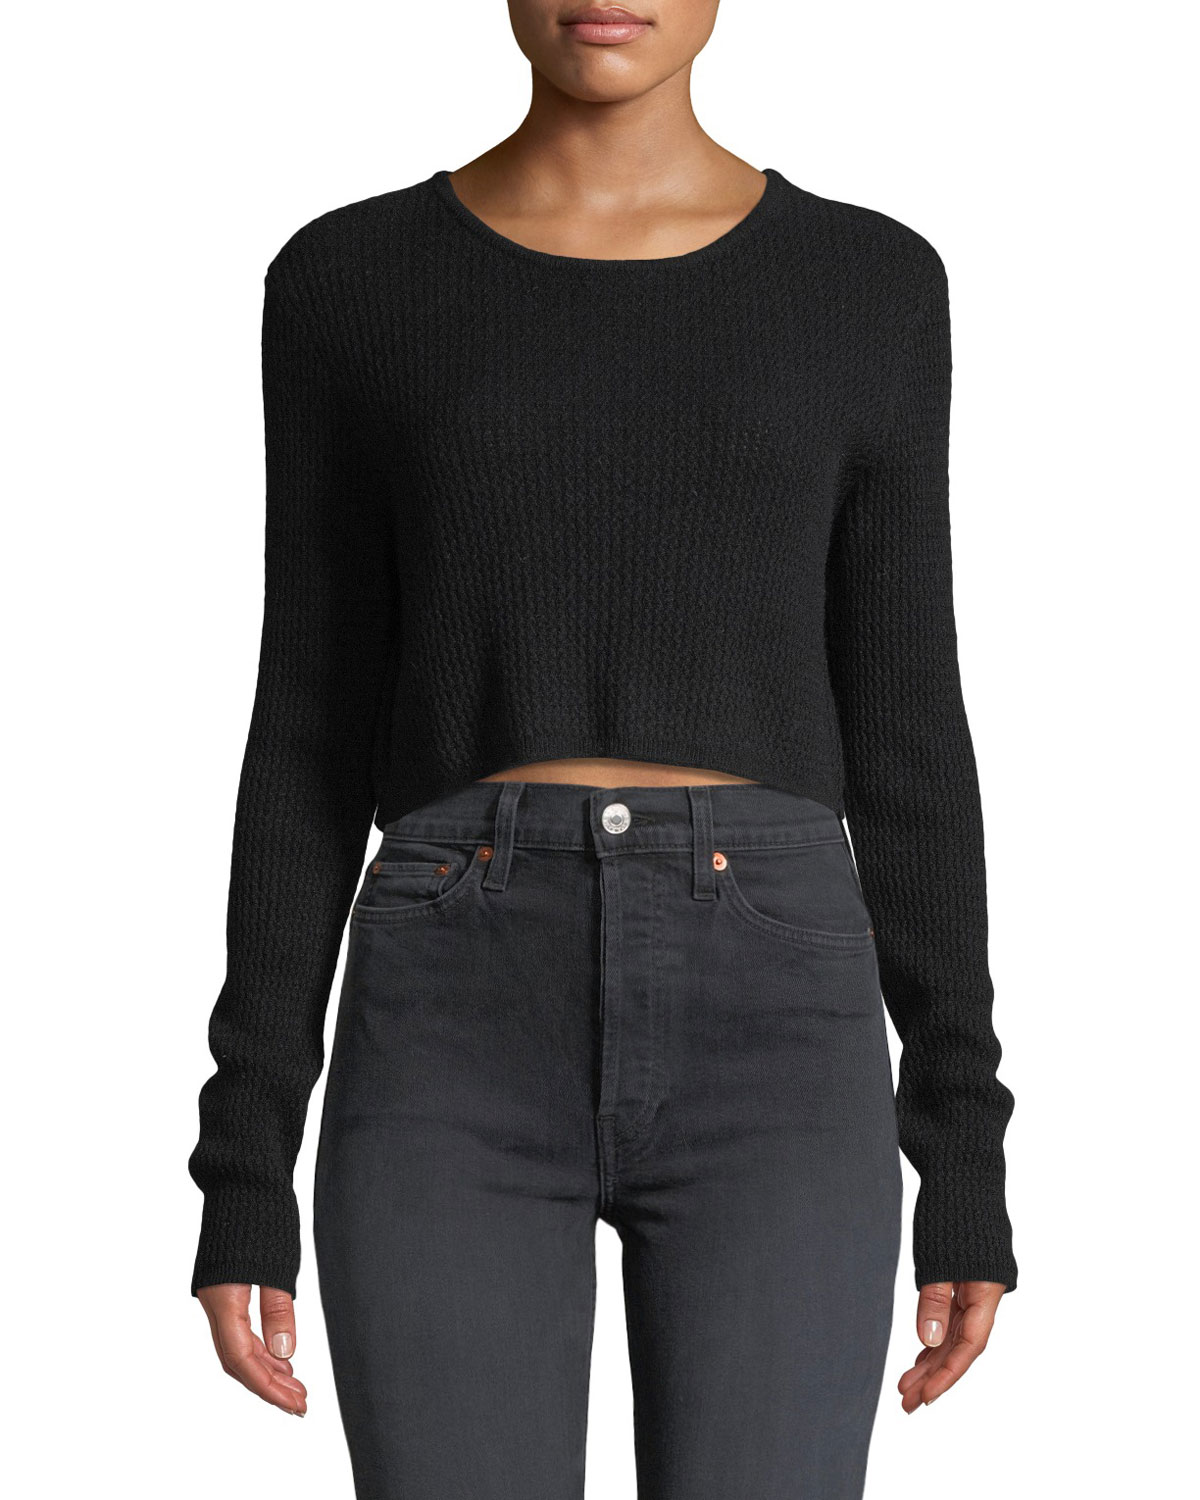 SABLYN Riley Cropped Cashmere Pullover Sweater in Black